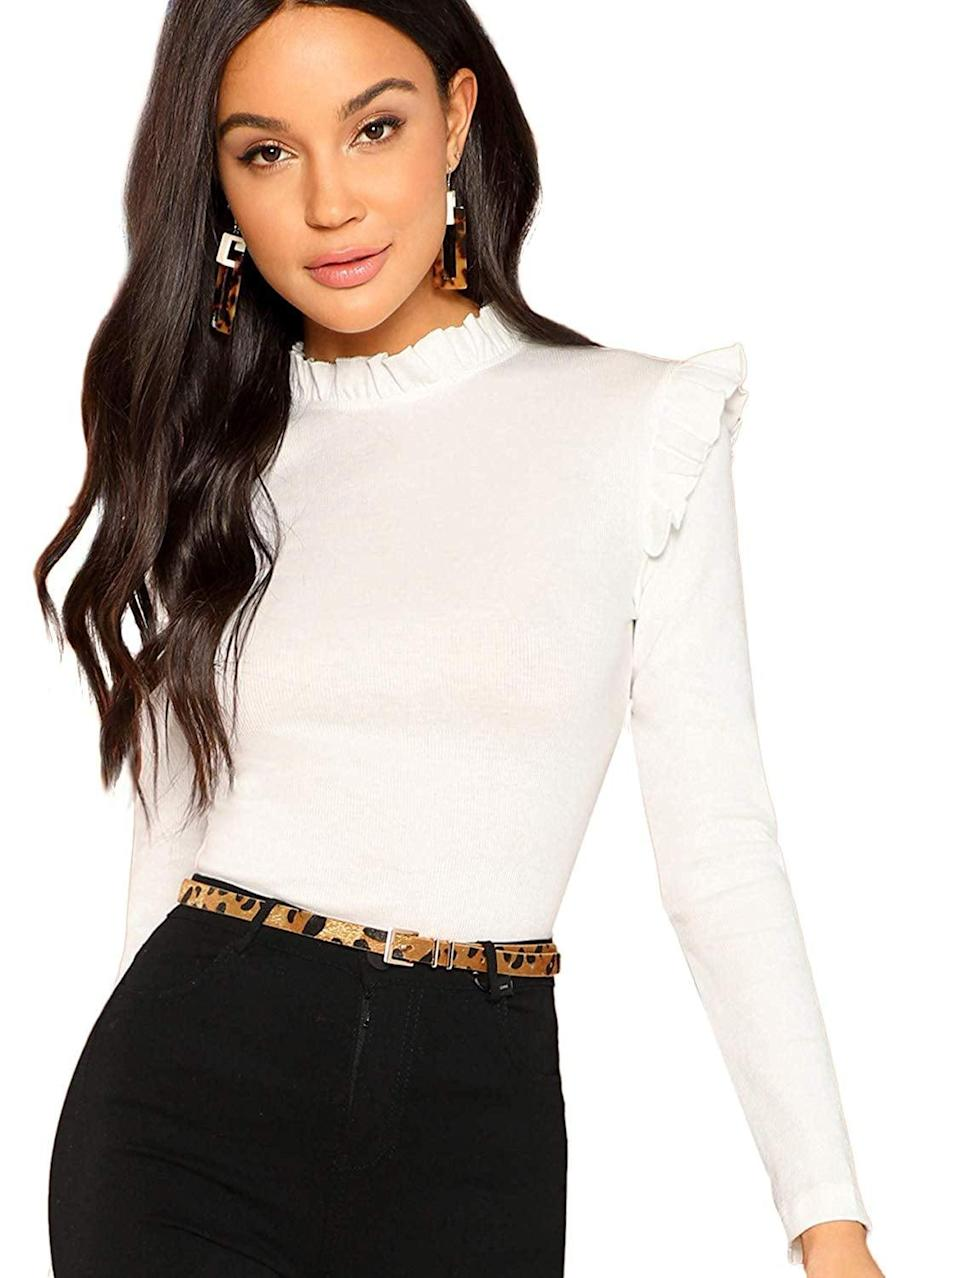 """<p>This <a href=""""https://www.popsugar.com/buy/Romwe-Stand-Collar-Slim-Fit-Frilled-Ruffles-Shoulder-Solid-Keyhole-Blouse-532853?p_name=Romwe%20Stand%20Collar%20Slim%20Fit%20Frilled%20Ruffles%20Shoulder%20Solid%20Keyhole%20Blouse&retailer=amazon.com&pid=532853&price=18&evar1=fab%3Aus&evar9=47165376&evar98=https%3A%2F%2Fwww.popsugar.com%2Ffashion%2Fphoto-gallery%2F47165376%2Fimage%2F47165537%2FRomwe-Stand-Collar-Slim-Fit-Frilled-Ruffles-Shoulder-Solid-Keyhole-Blouse&list1=shopping%2Camazon%2Cwinter%20fashion&prop13=mobile&pdata=1"""" class=""""link rapid-noclick-resp"""" rel=""""nofollow noopener"""" target=""""_blank"""" data-ylk=""""slk:Romwe Stand Collar Slim Fit Frilled Ruffles Shoulder Solid Keyhole Blouse"""">Romwe Stand Collar Slim Fit Frilled Ruffles Shoulder Solid Keyhole Blouse</a> ($18) comes in tons of different colors.</p>"""